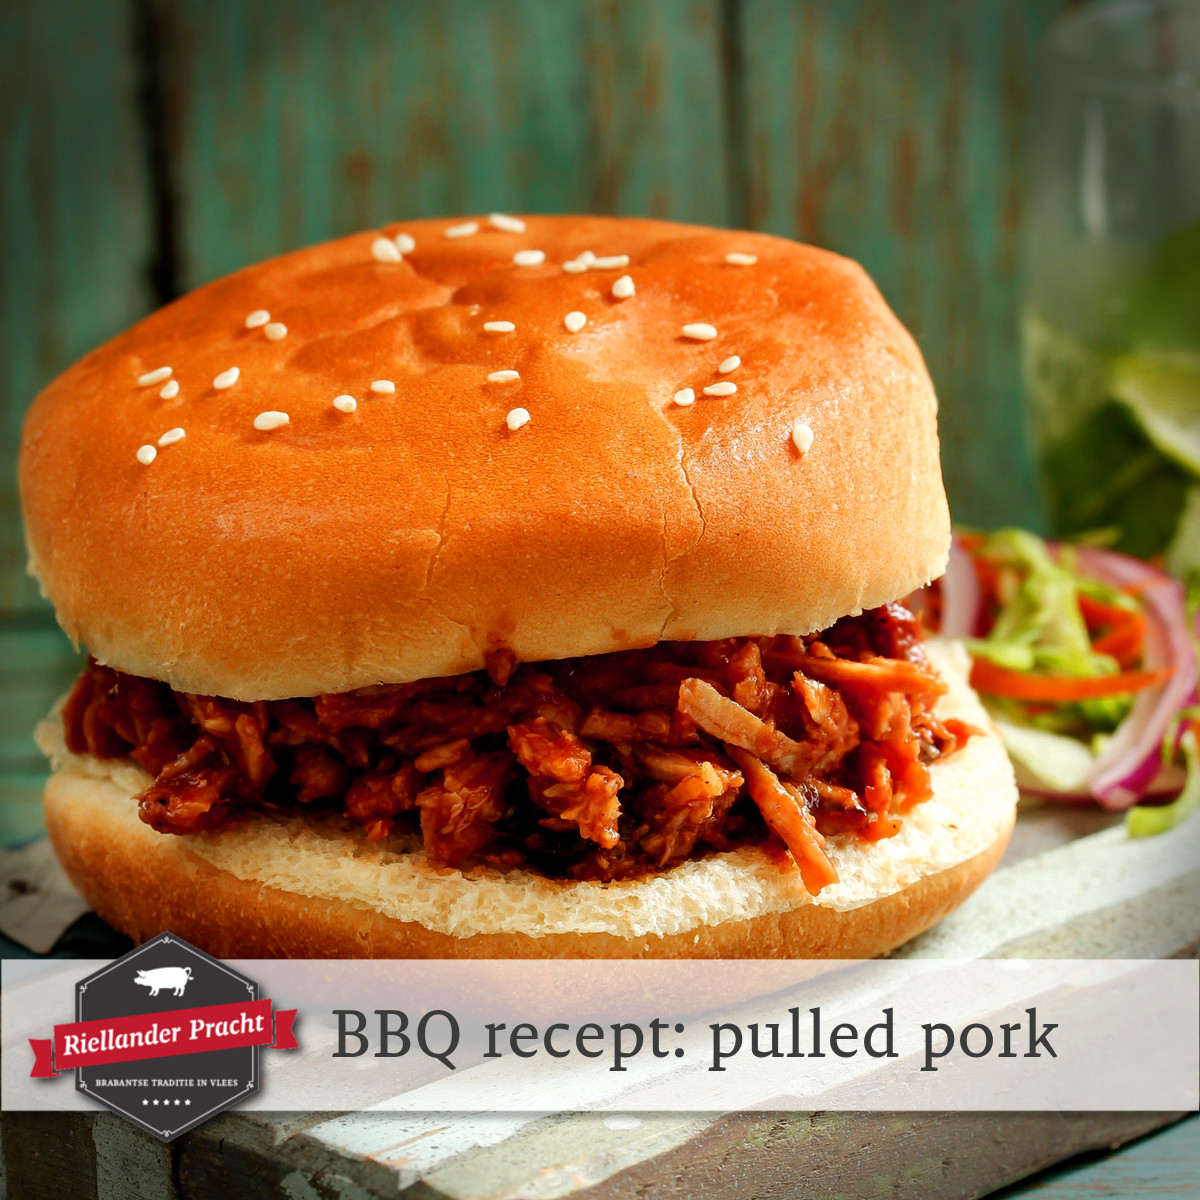 BBQ recept: pulled pork